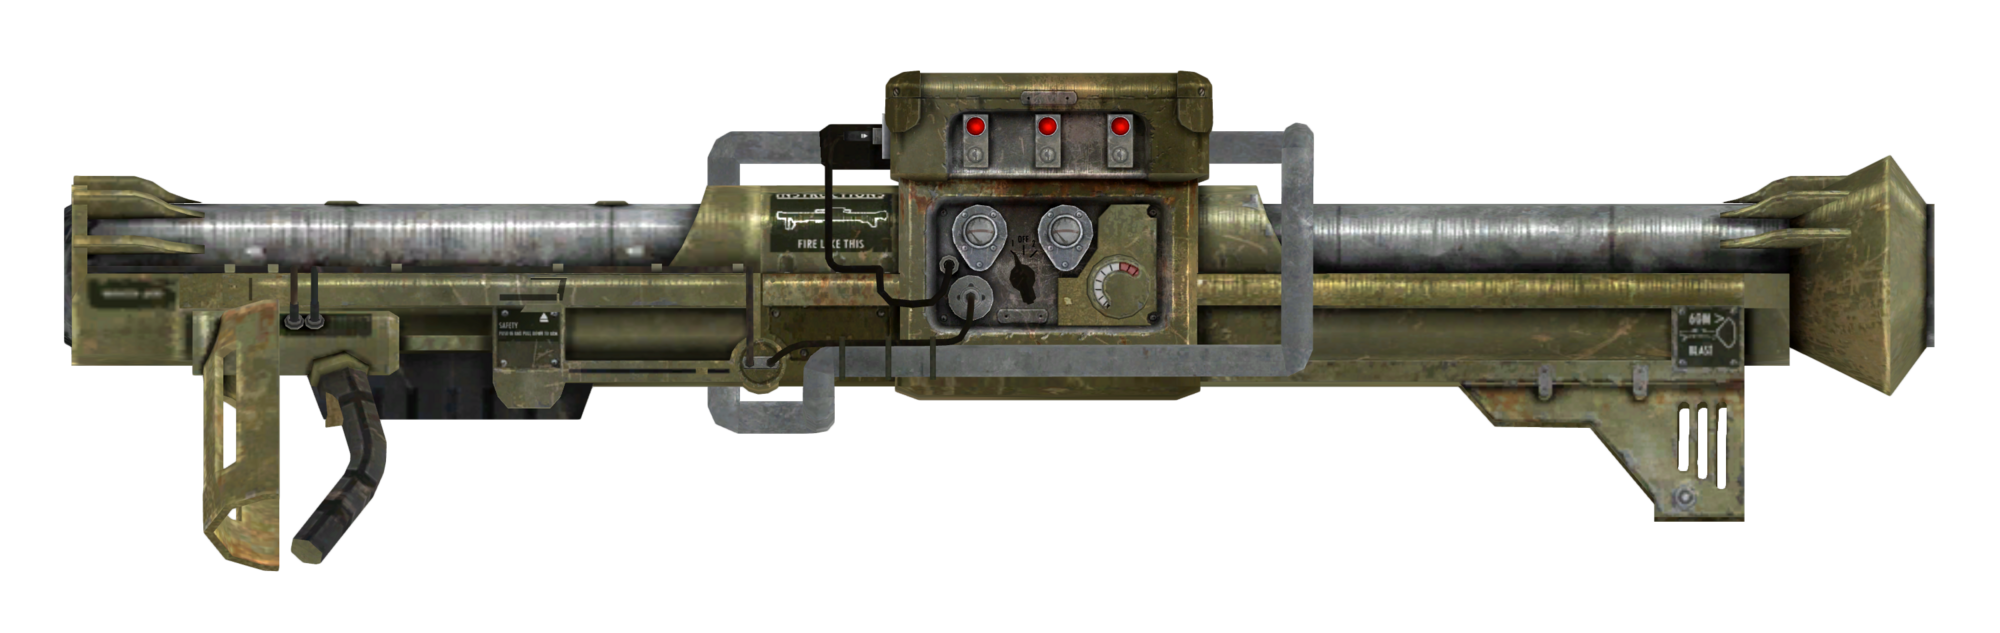 2000?cb=20110209030304 tesla cannon (beta) fallout wiki fandom powered by wikia fallout new vegas electric box fuse at gsmx.co